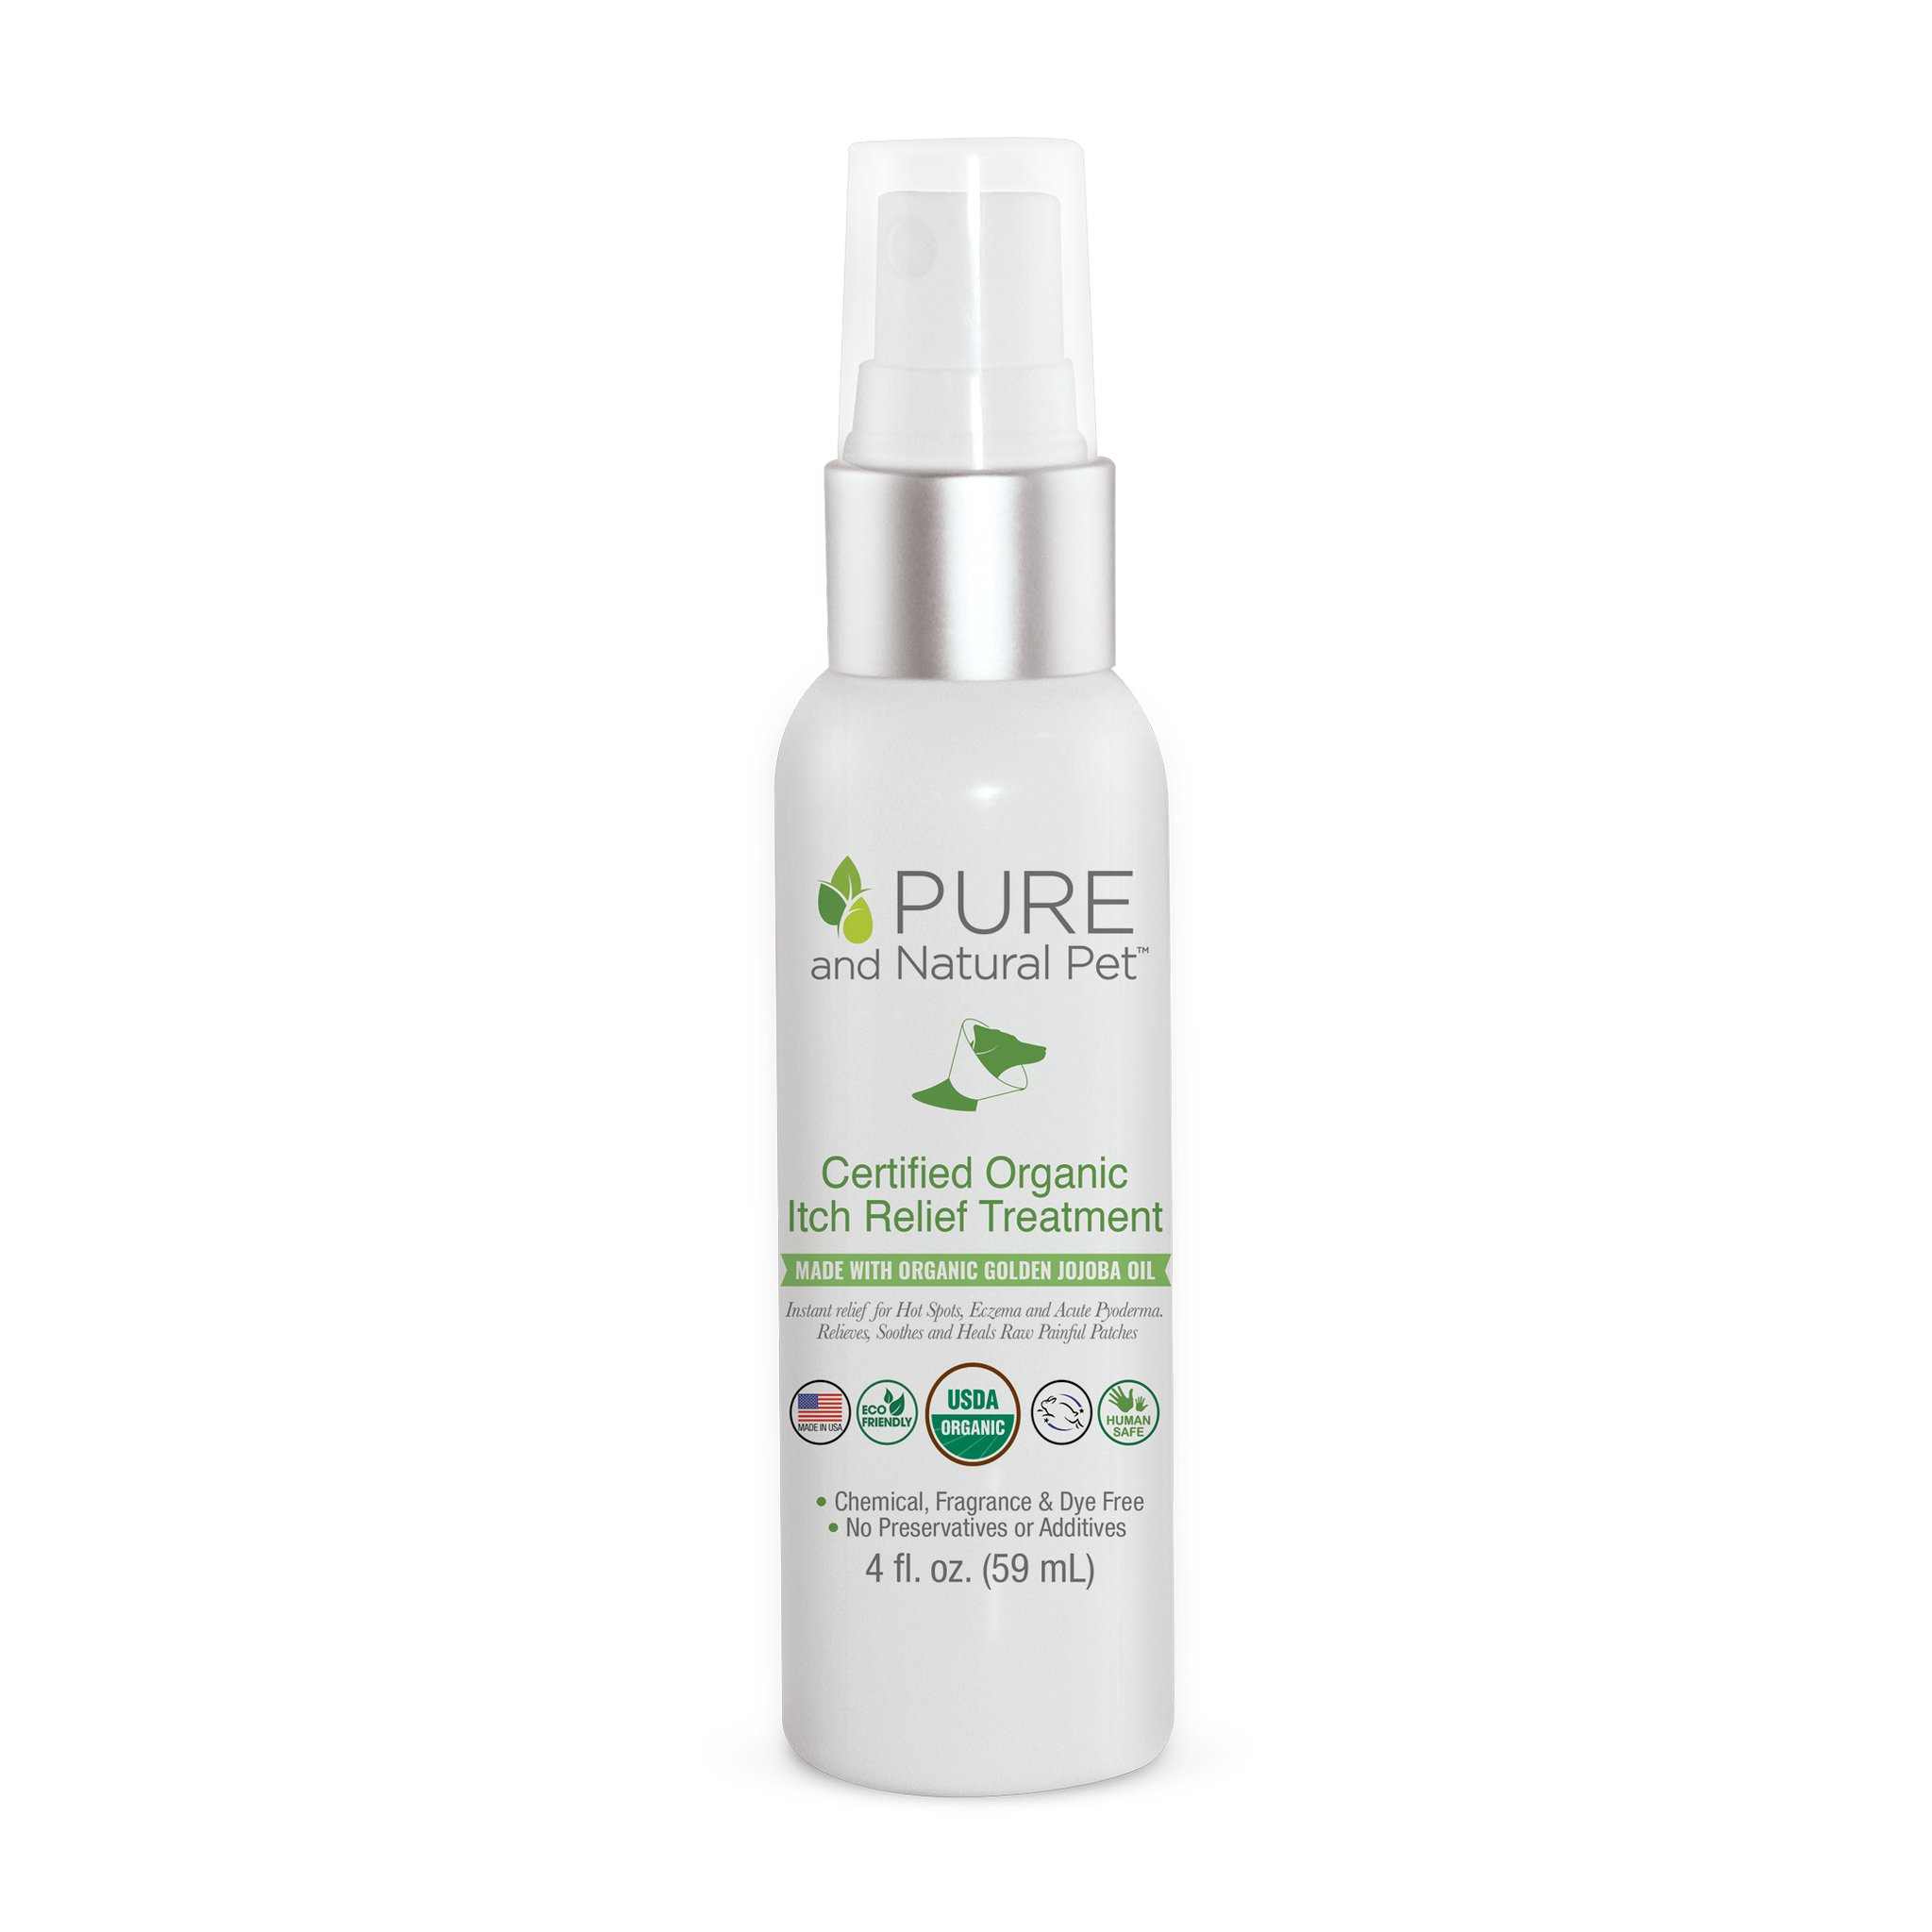 Pure and Natural Pet Certified Organic Itch Relief Treatment for Pets, 2-oz